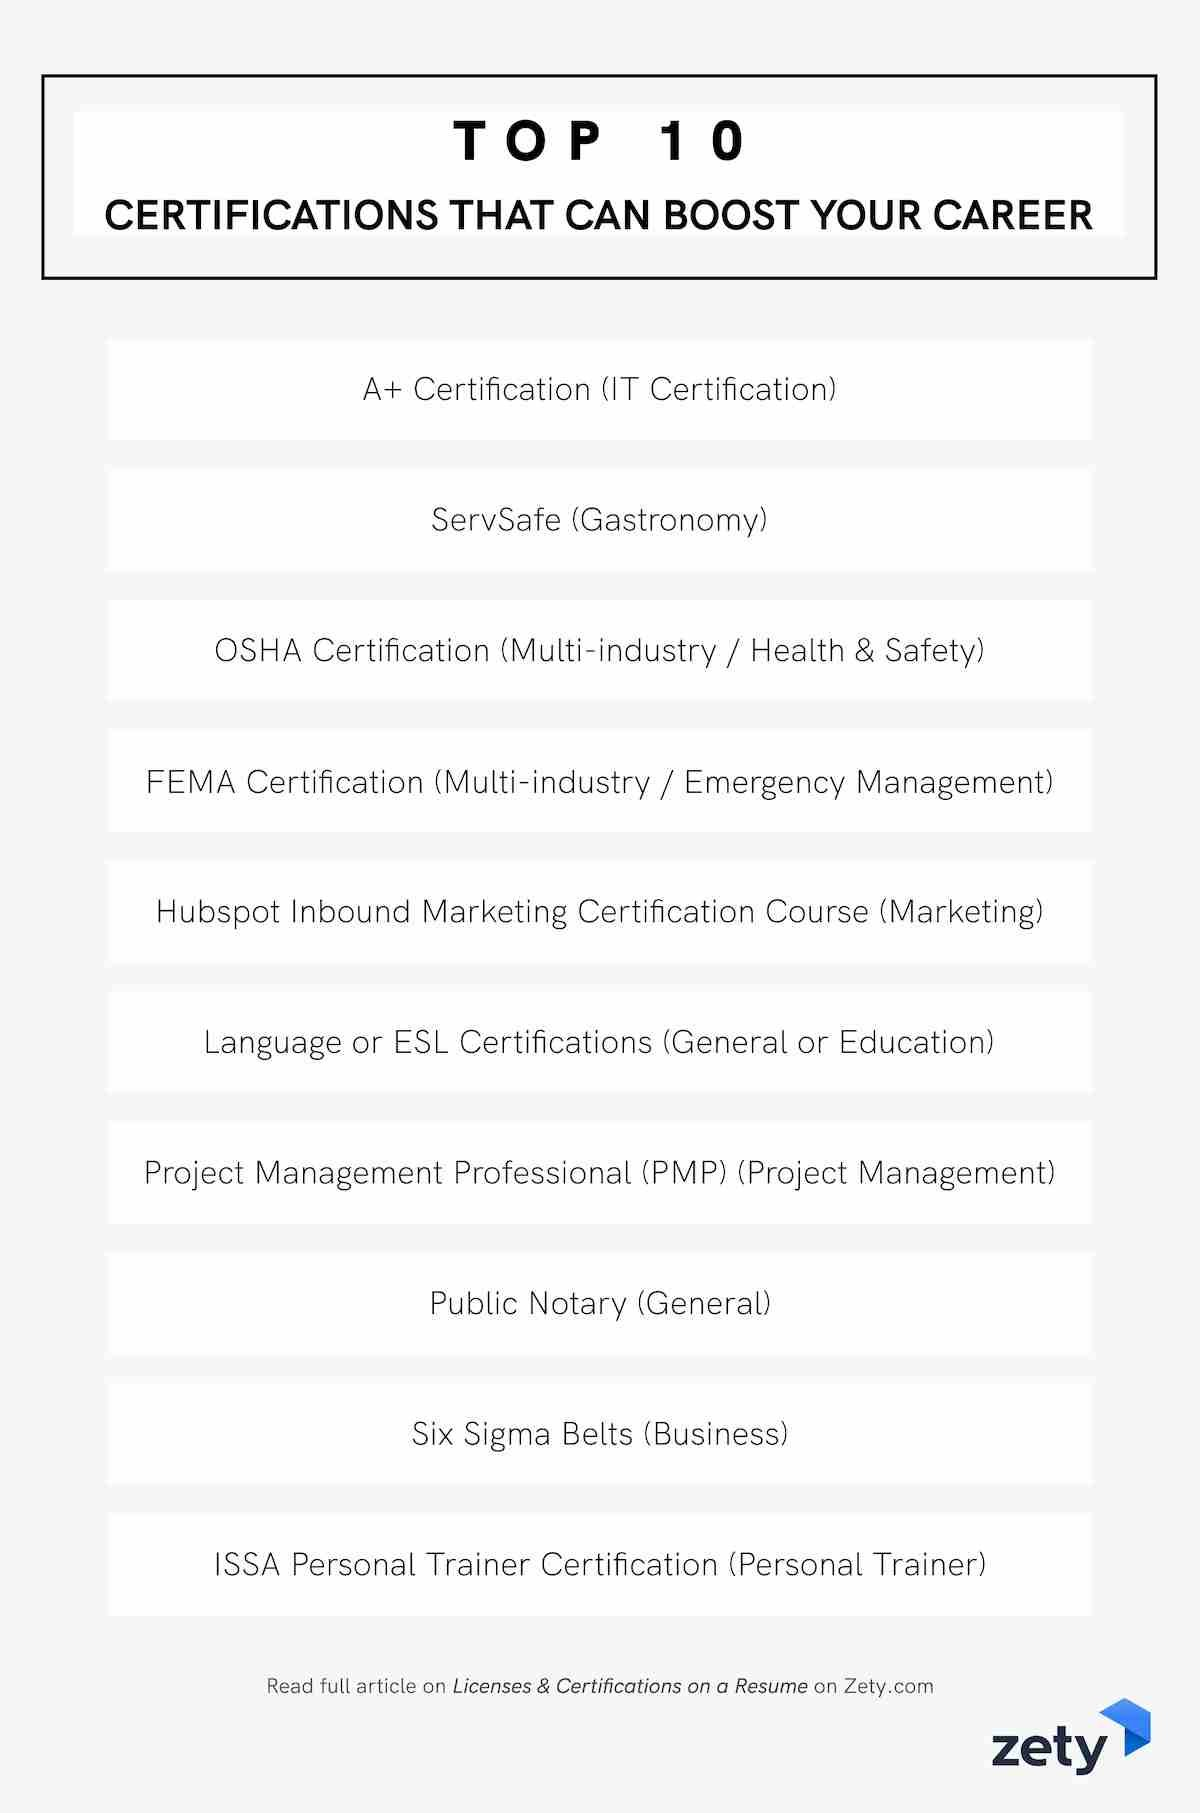 licenses certifications on resume sample easy tips listing training of useful for that Resume Listing Training On Resume